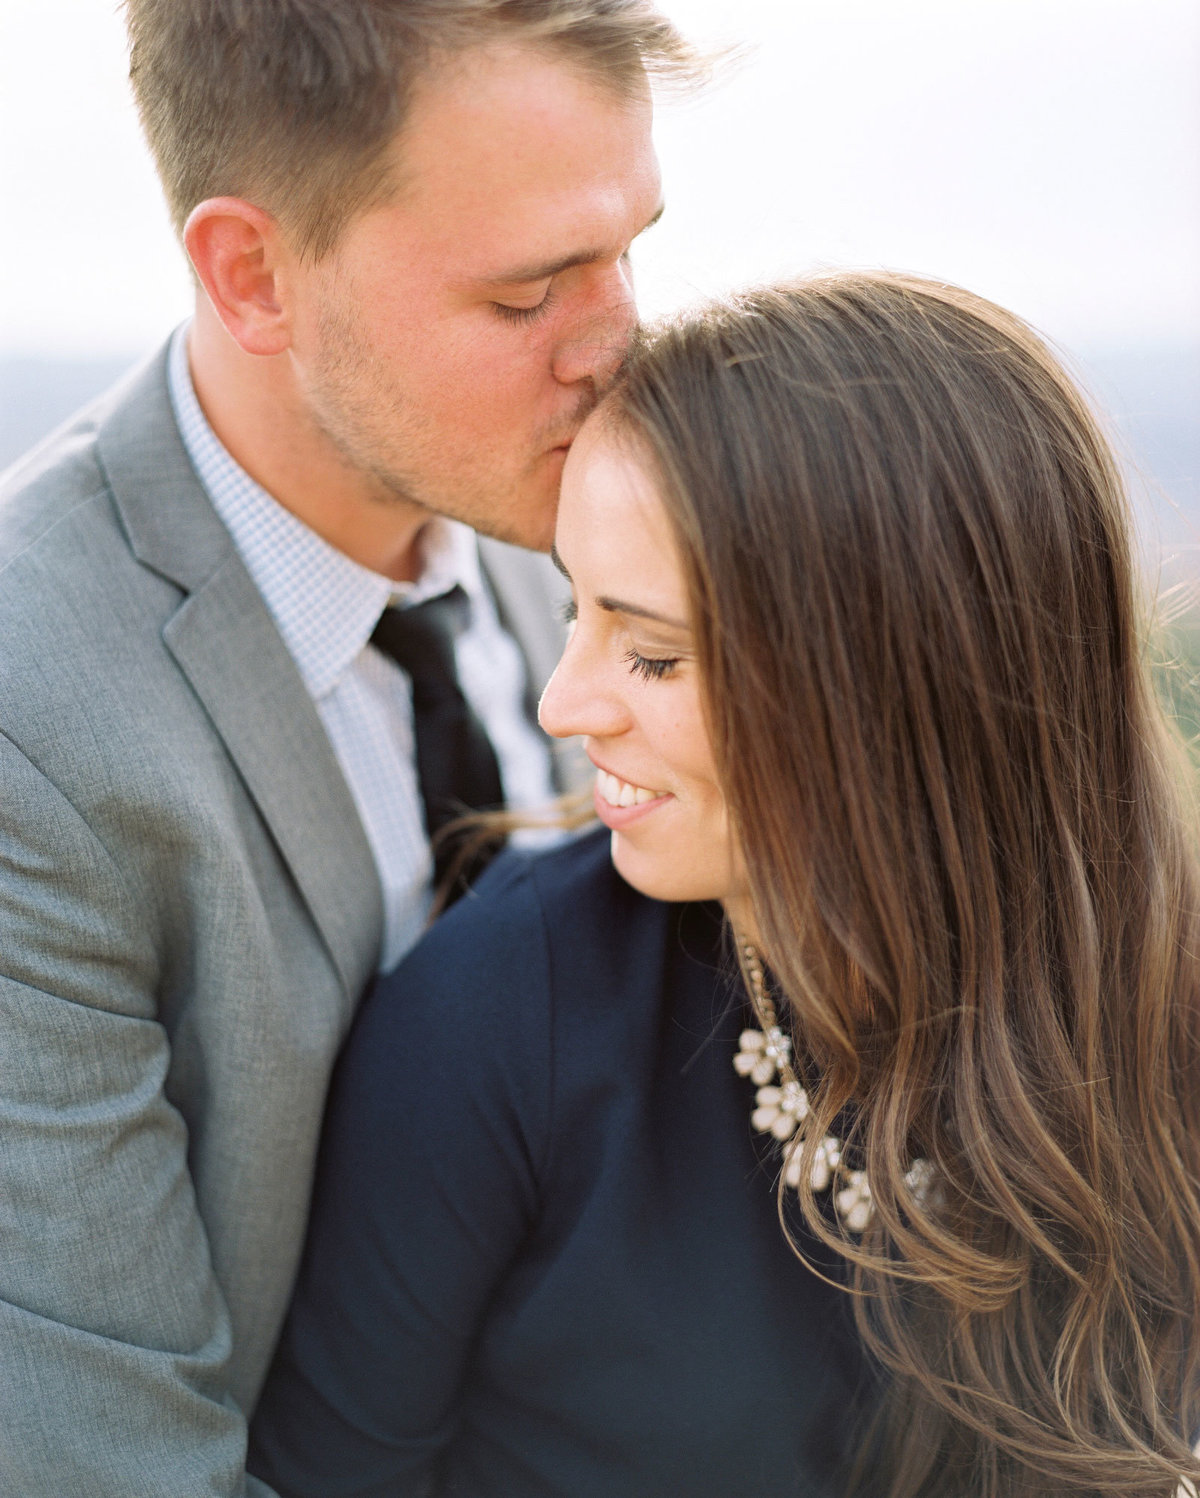 15_lovebirds_and_lace_wedding_photography_destination_wedding_southern_california